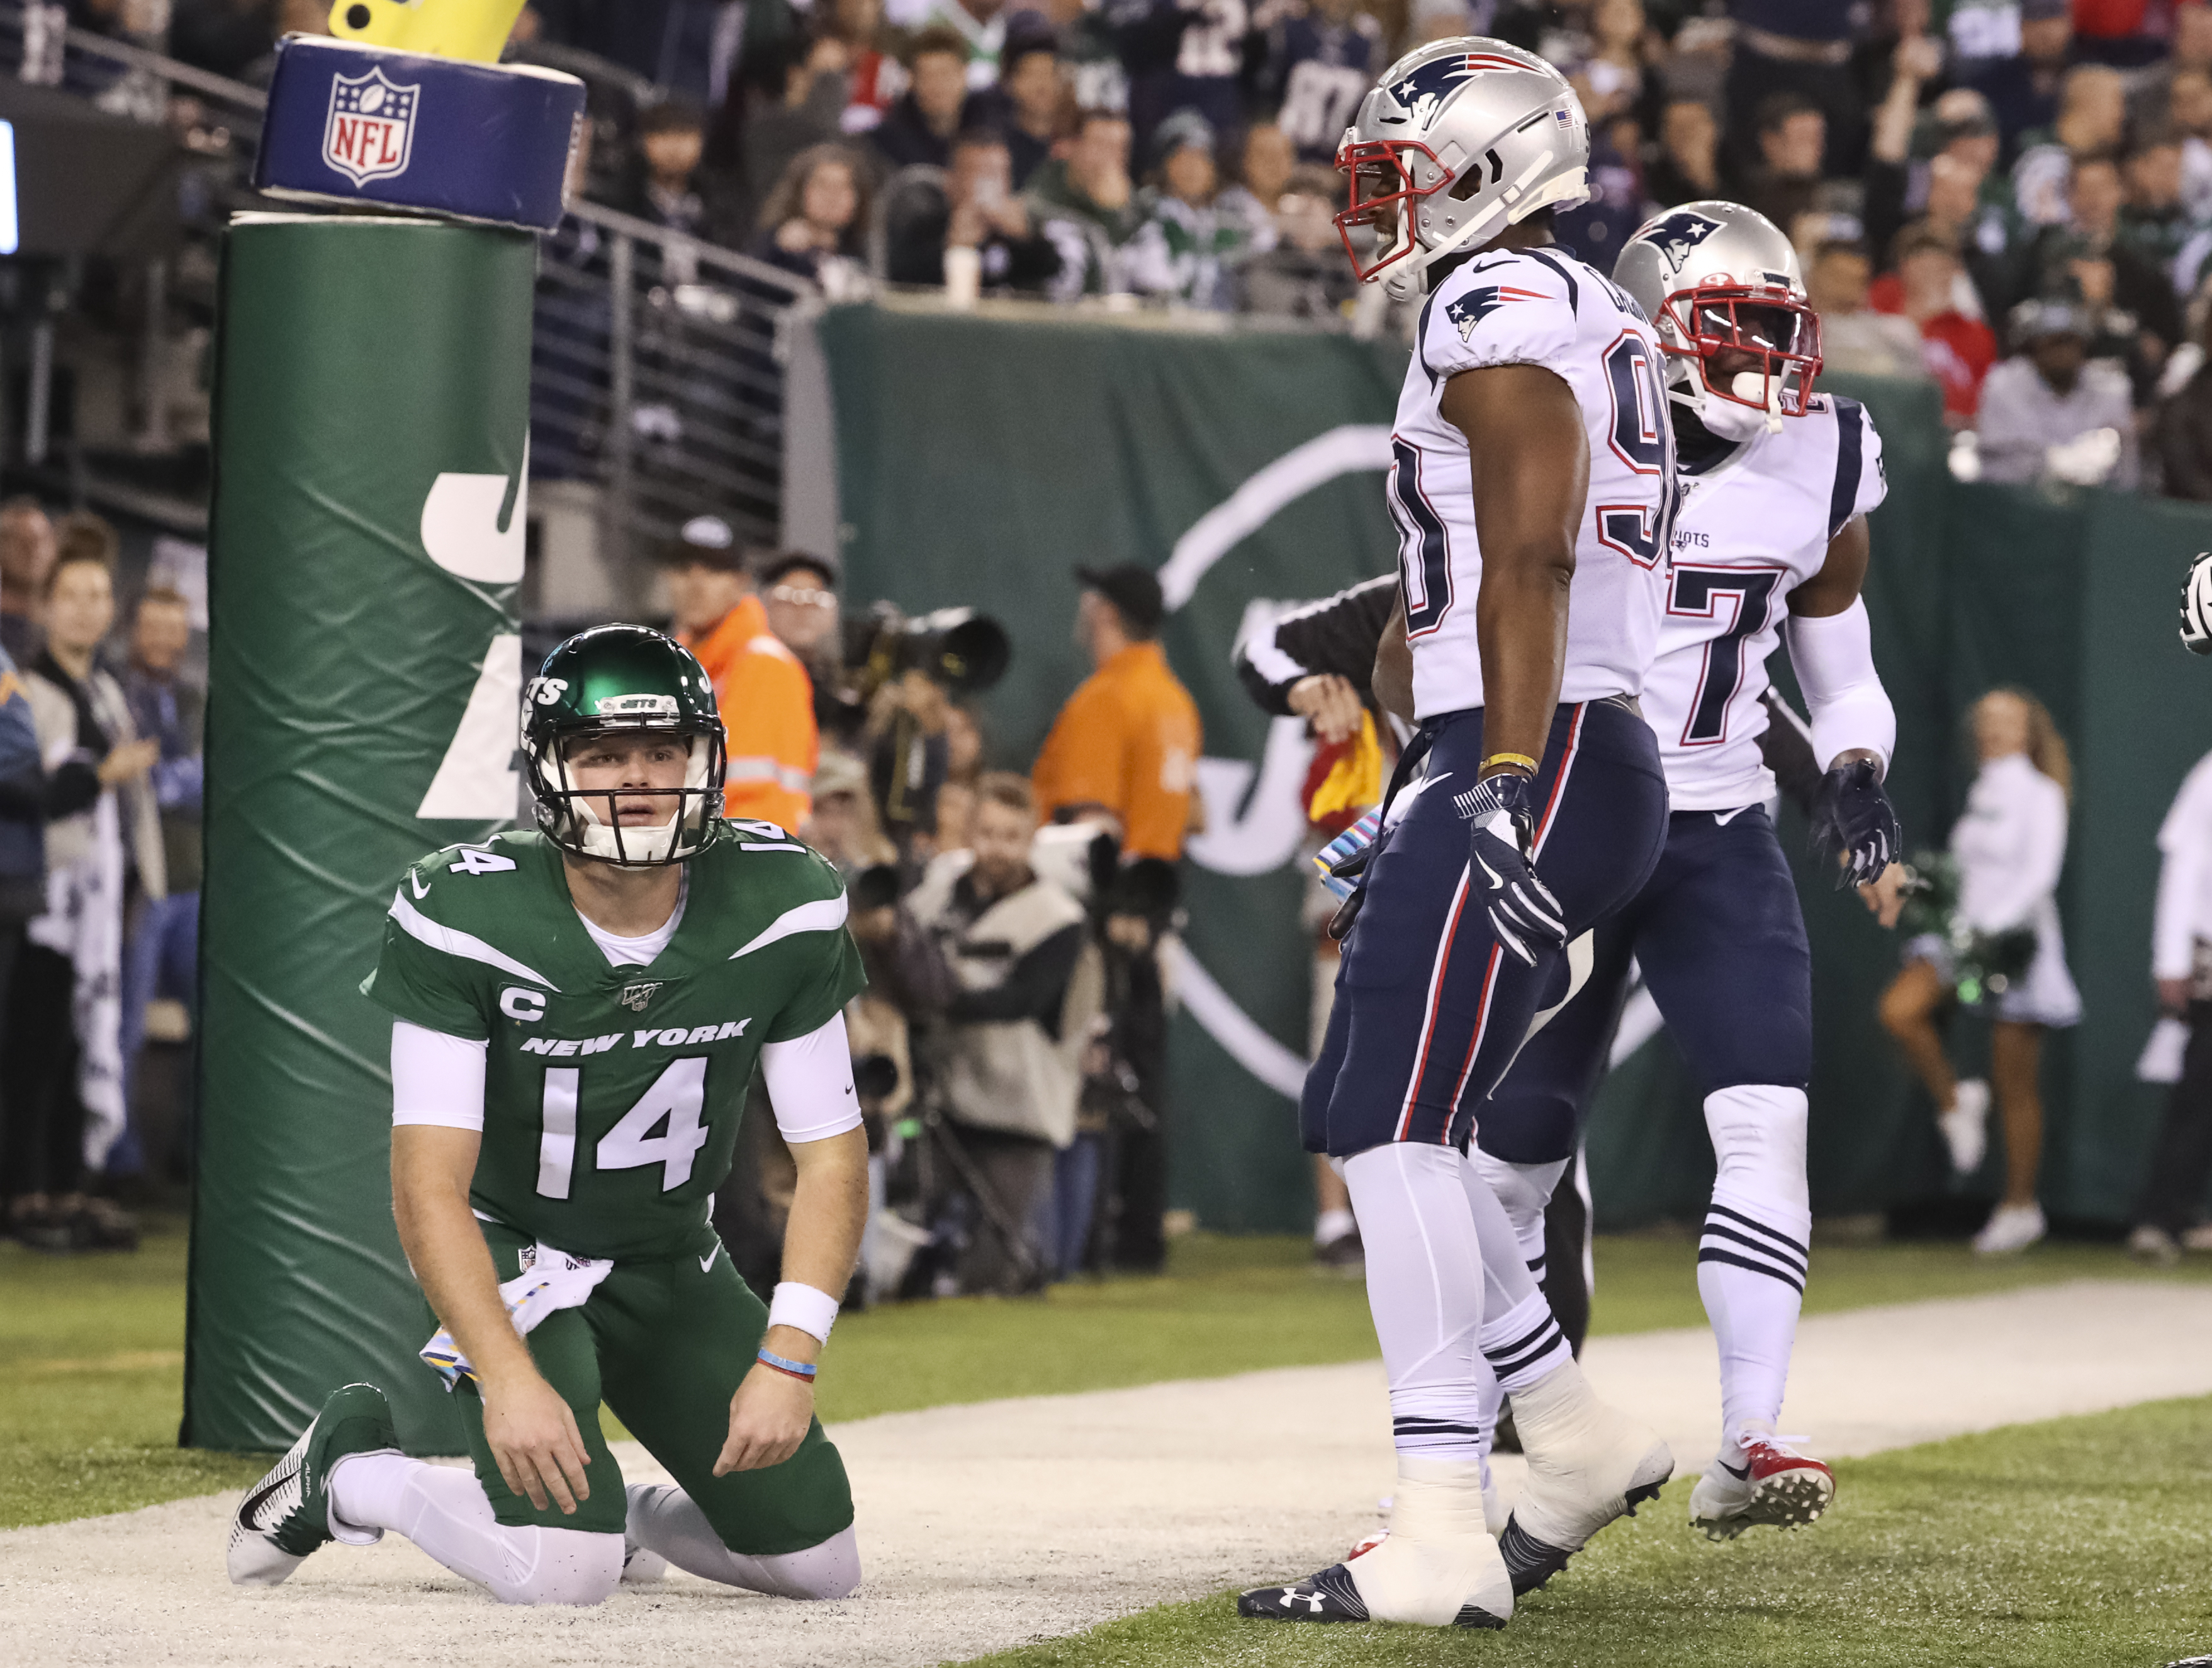 Sure, it was the Jets, but that was the best performance of the season